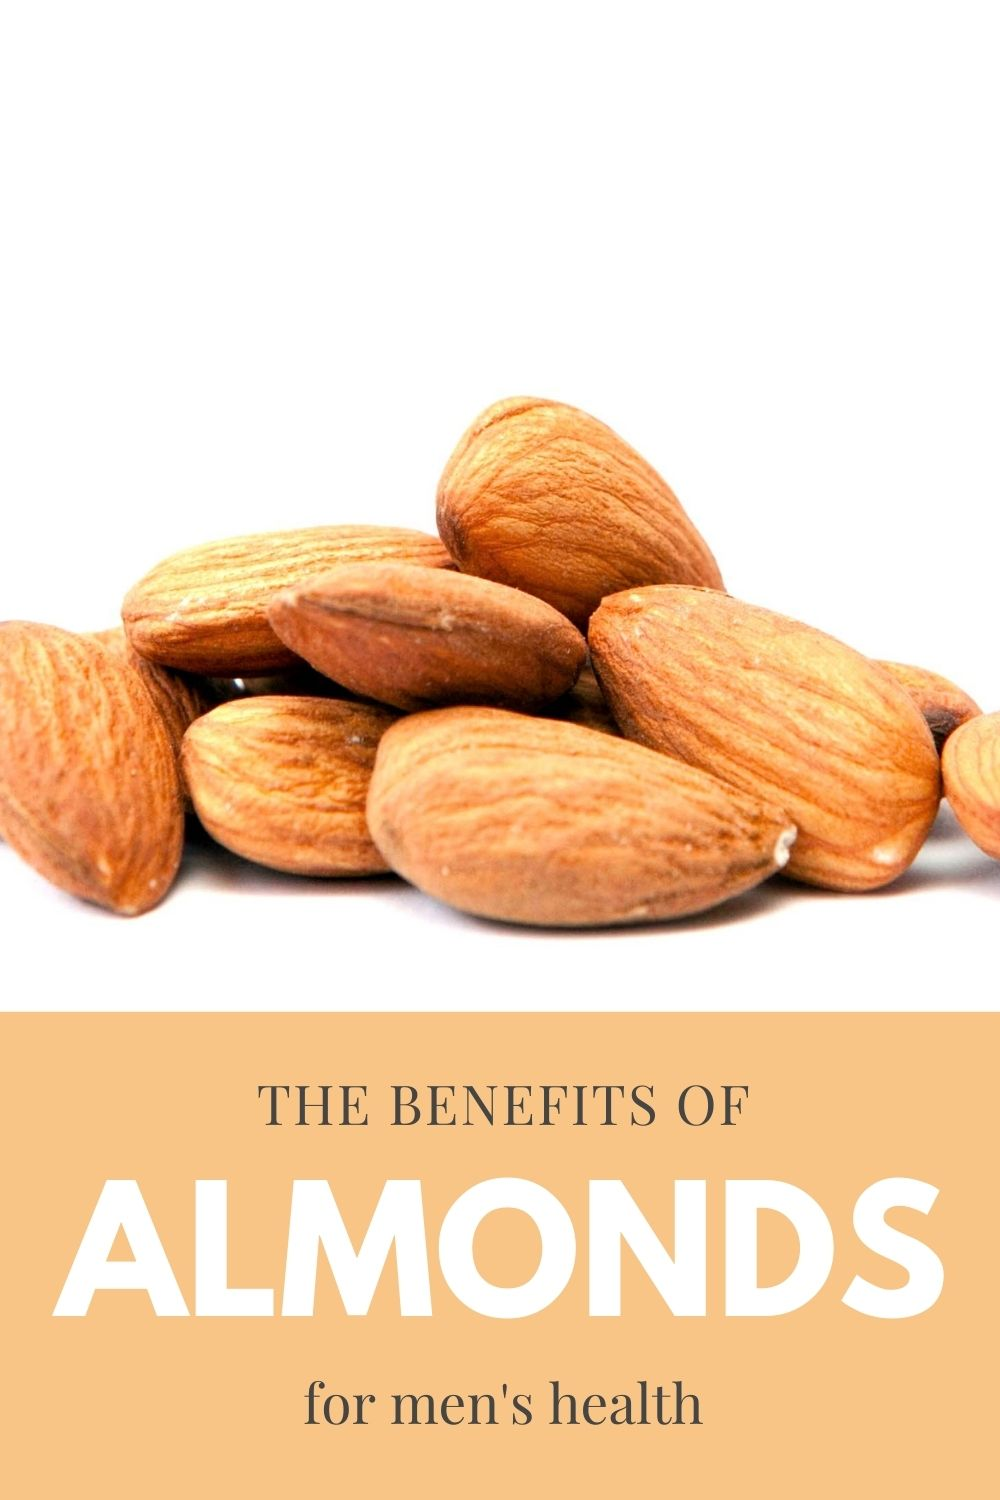 almond benefits for men graphic